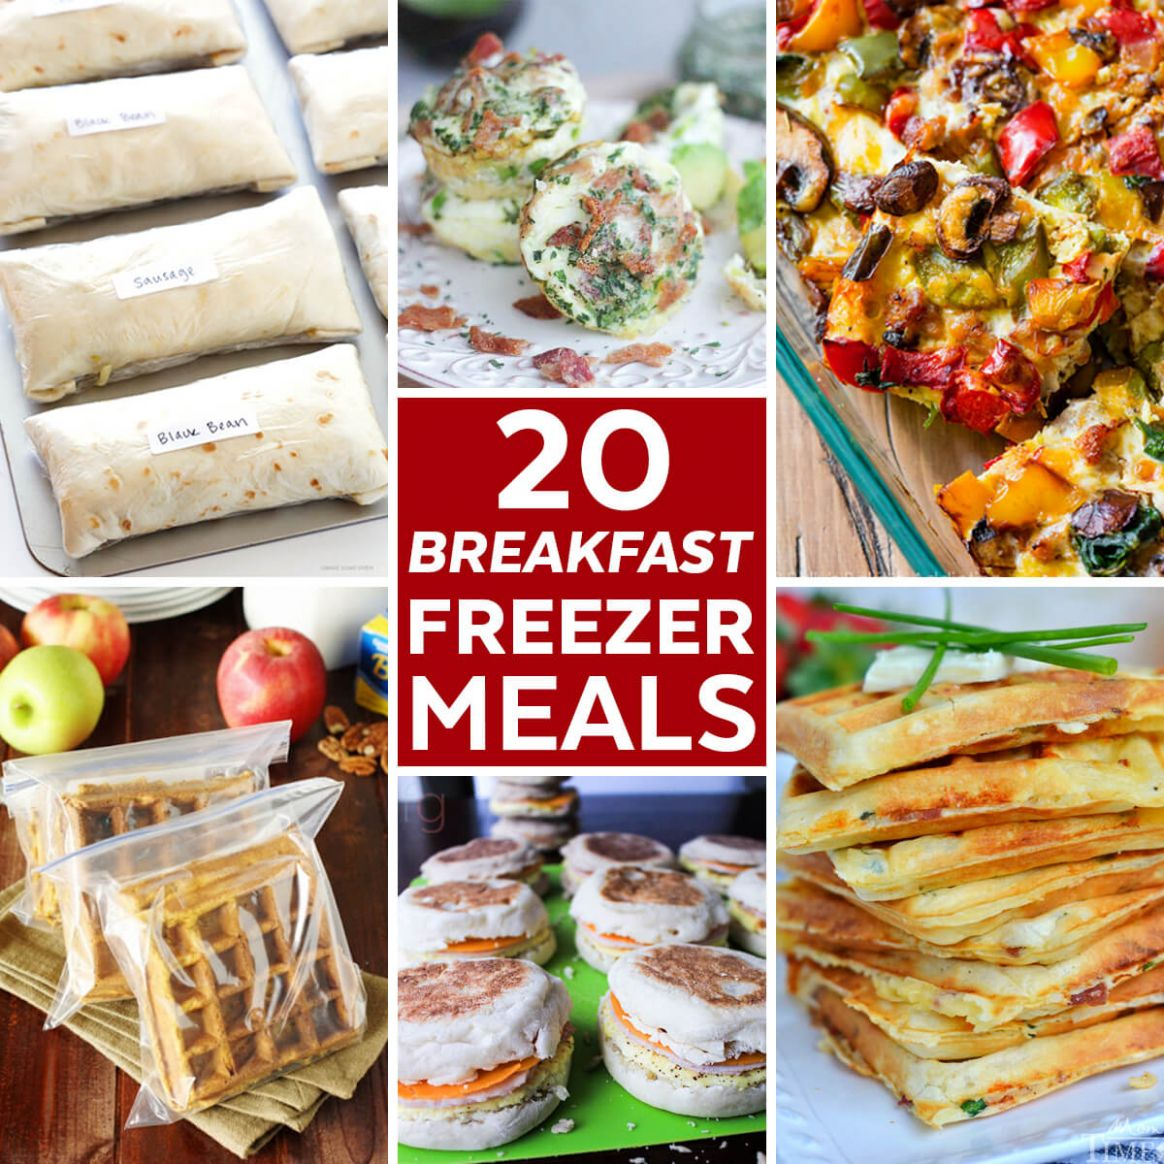 8 Freezer Meals to Stock your Freezer with Breakfasts - Breakfast Recipes To Freeze